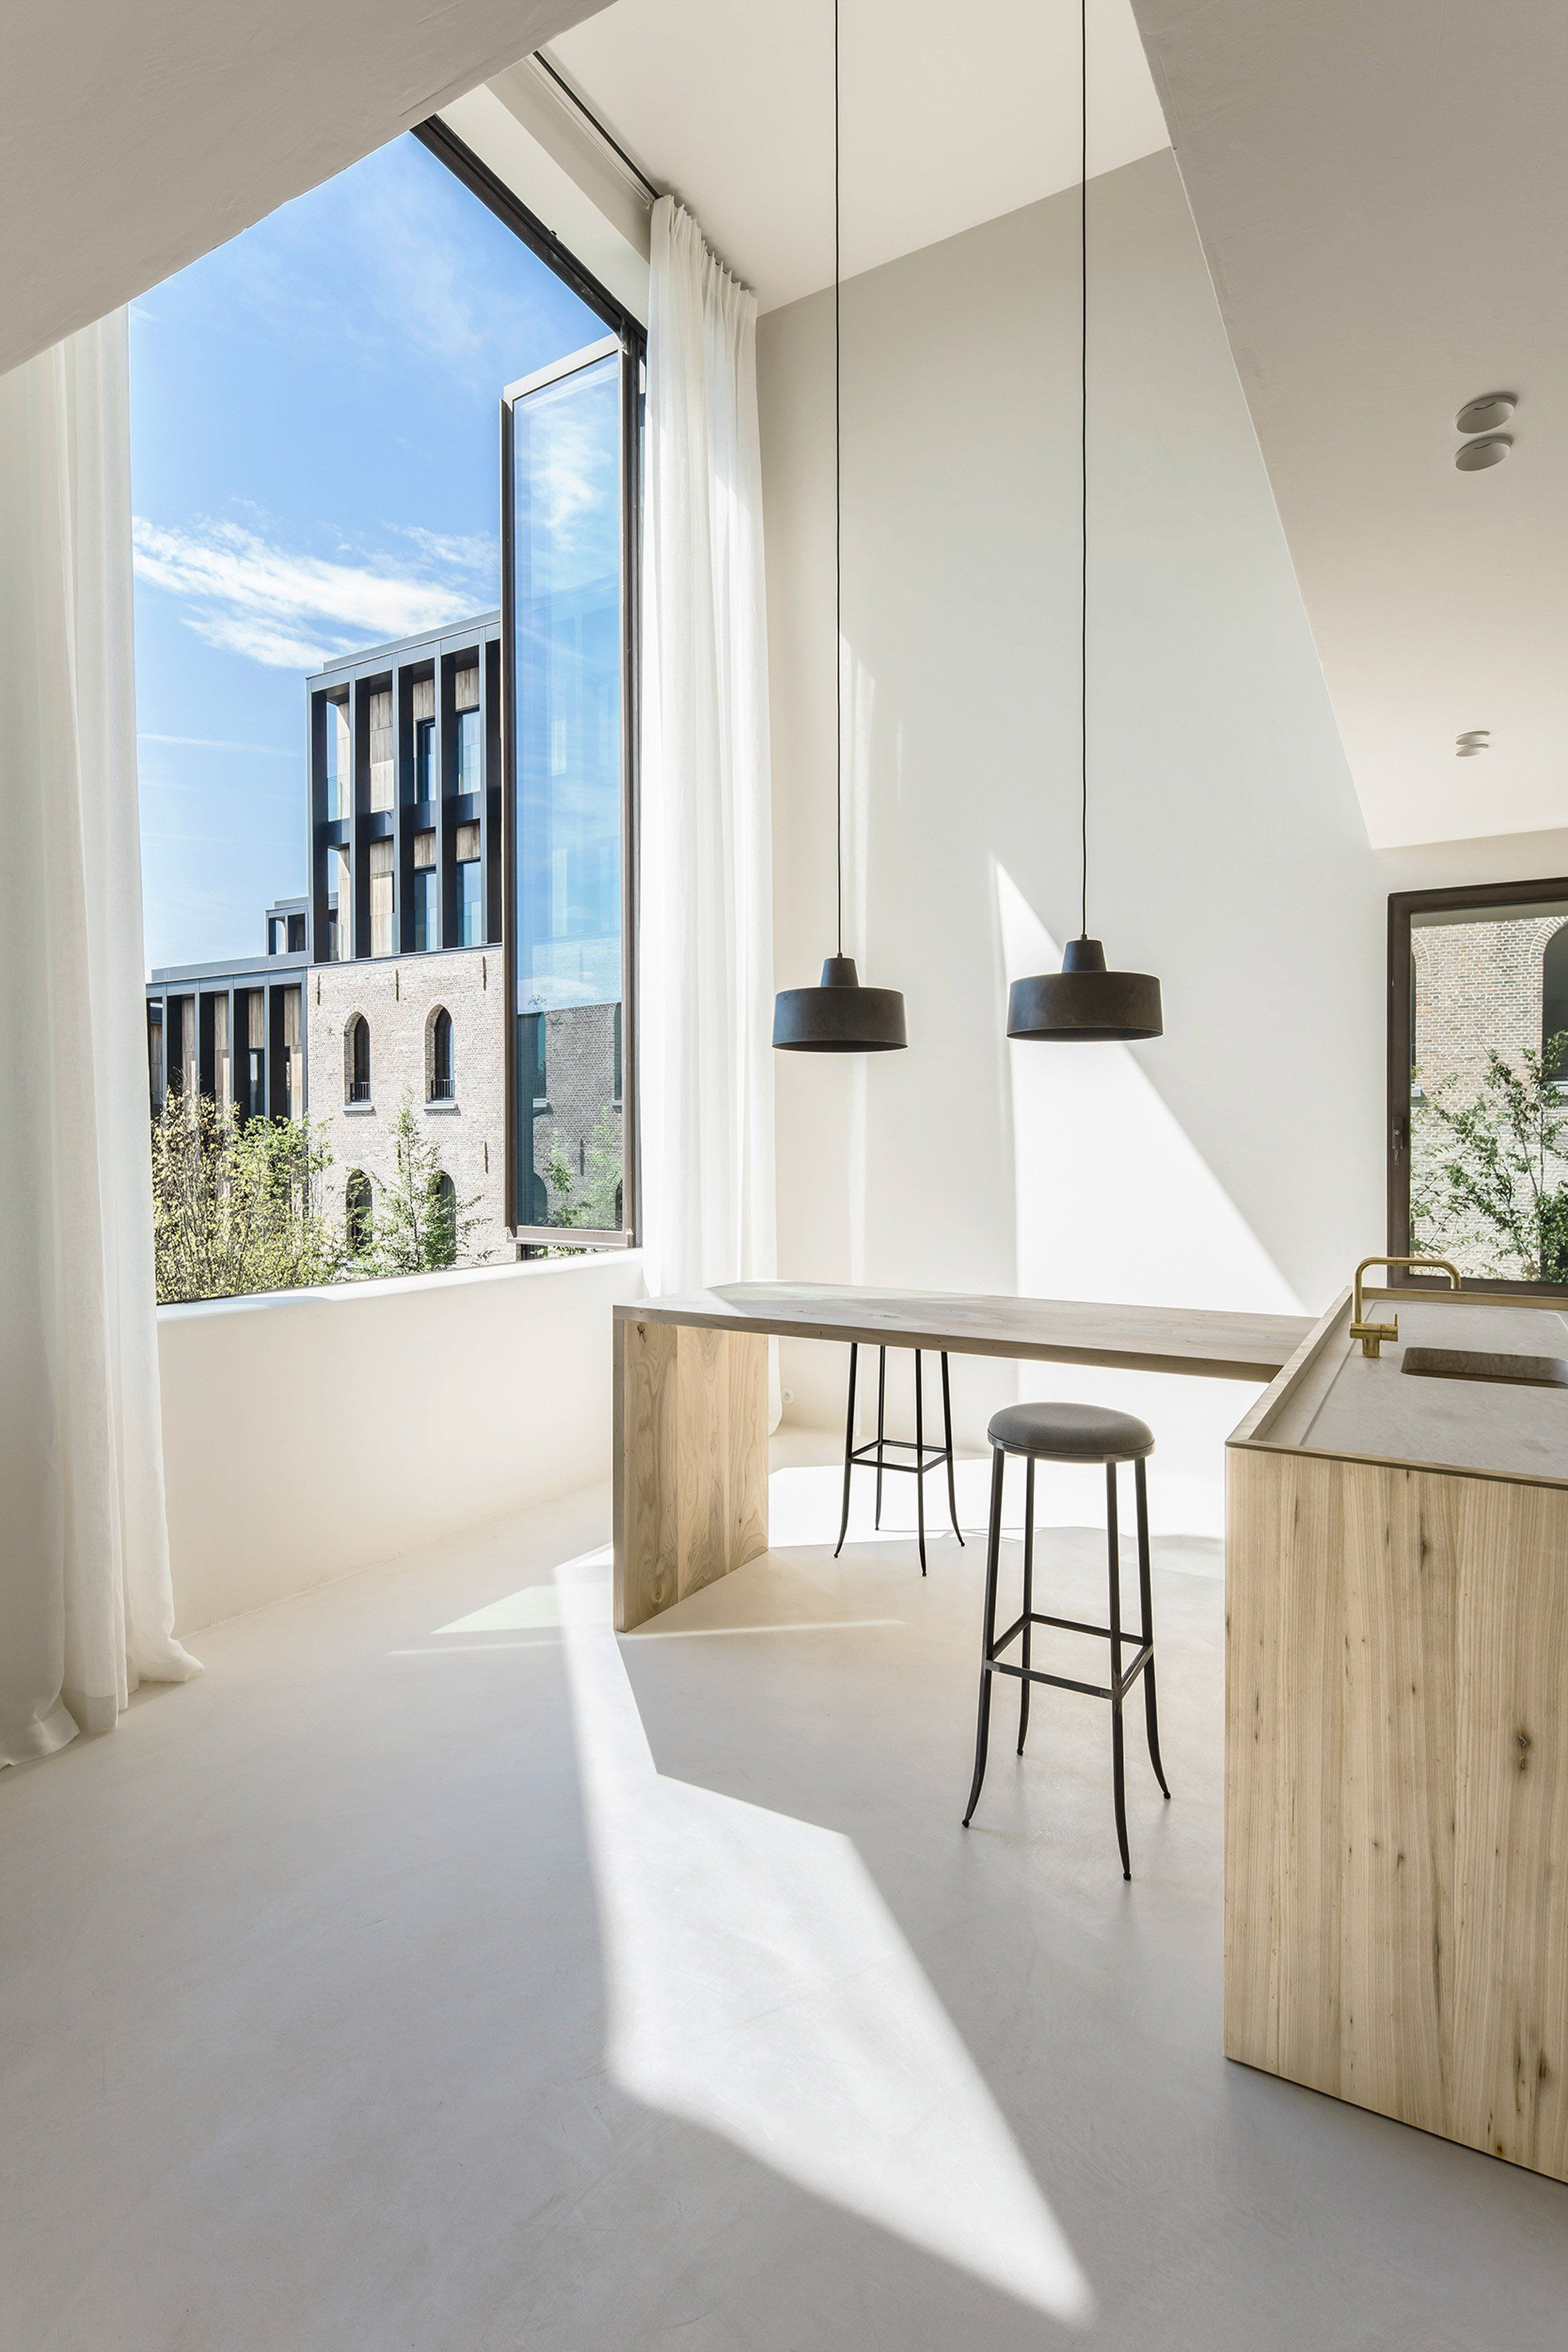 The Apartment Designed By Interior Architect Arjaan De Feyter Is